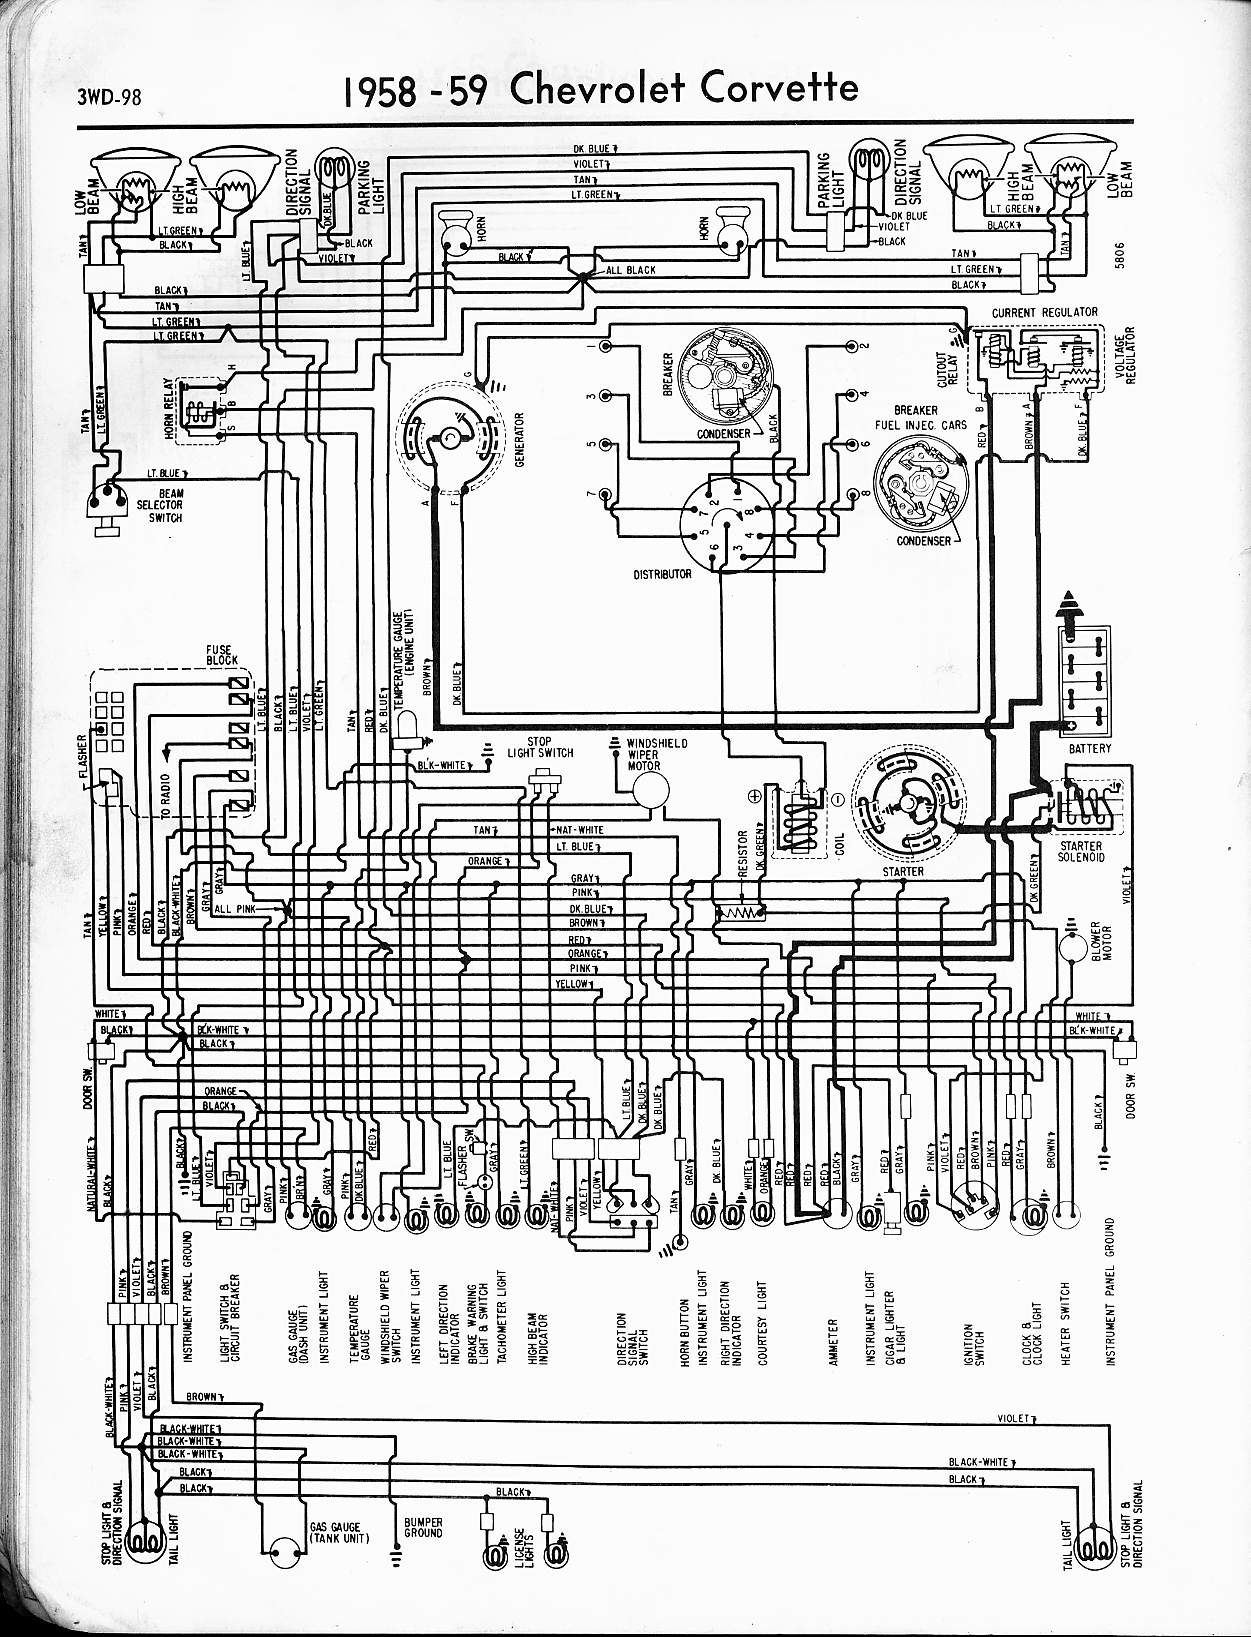 1957 Chevrolet Steering Column Wiring Diagram Simple Jeep 57 65 Chevy Diagrams